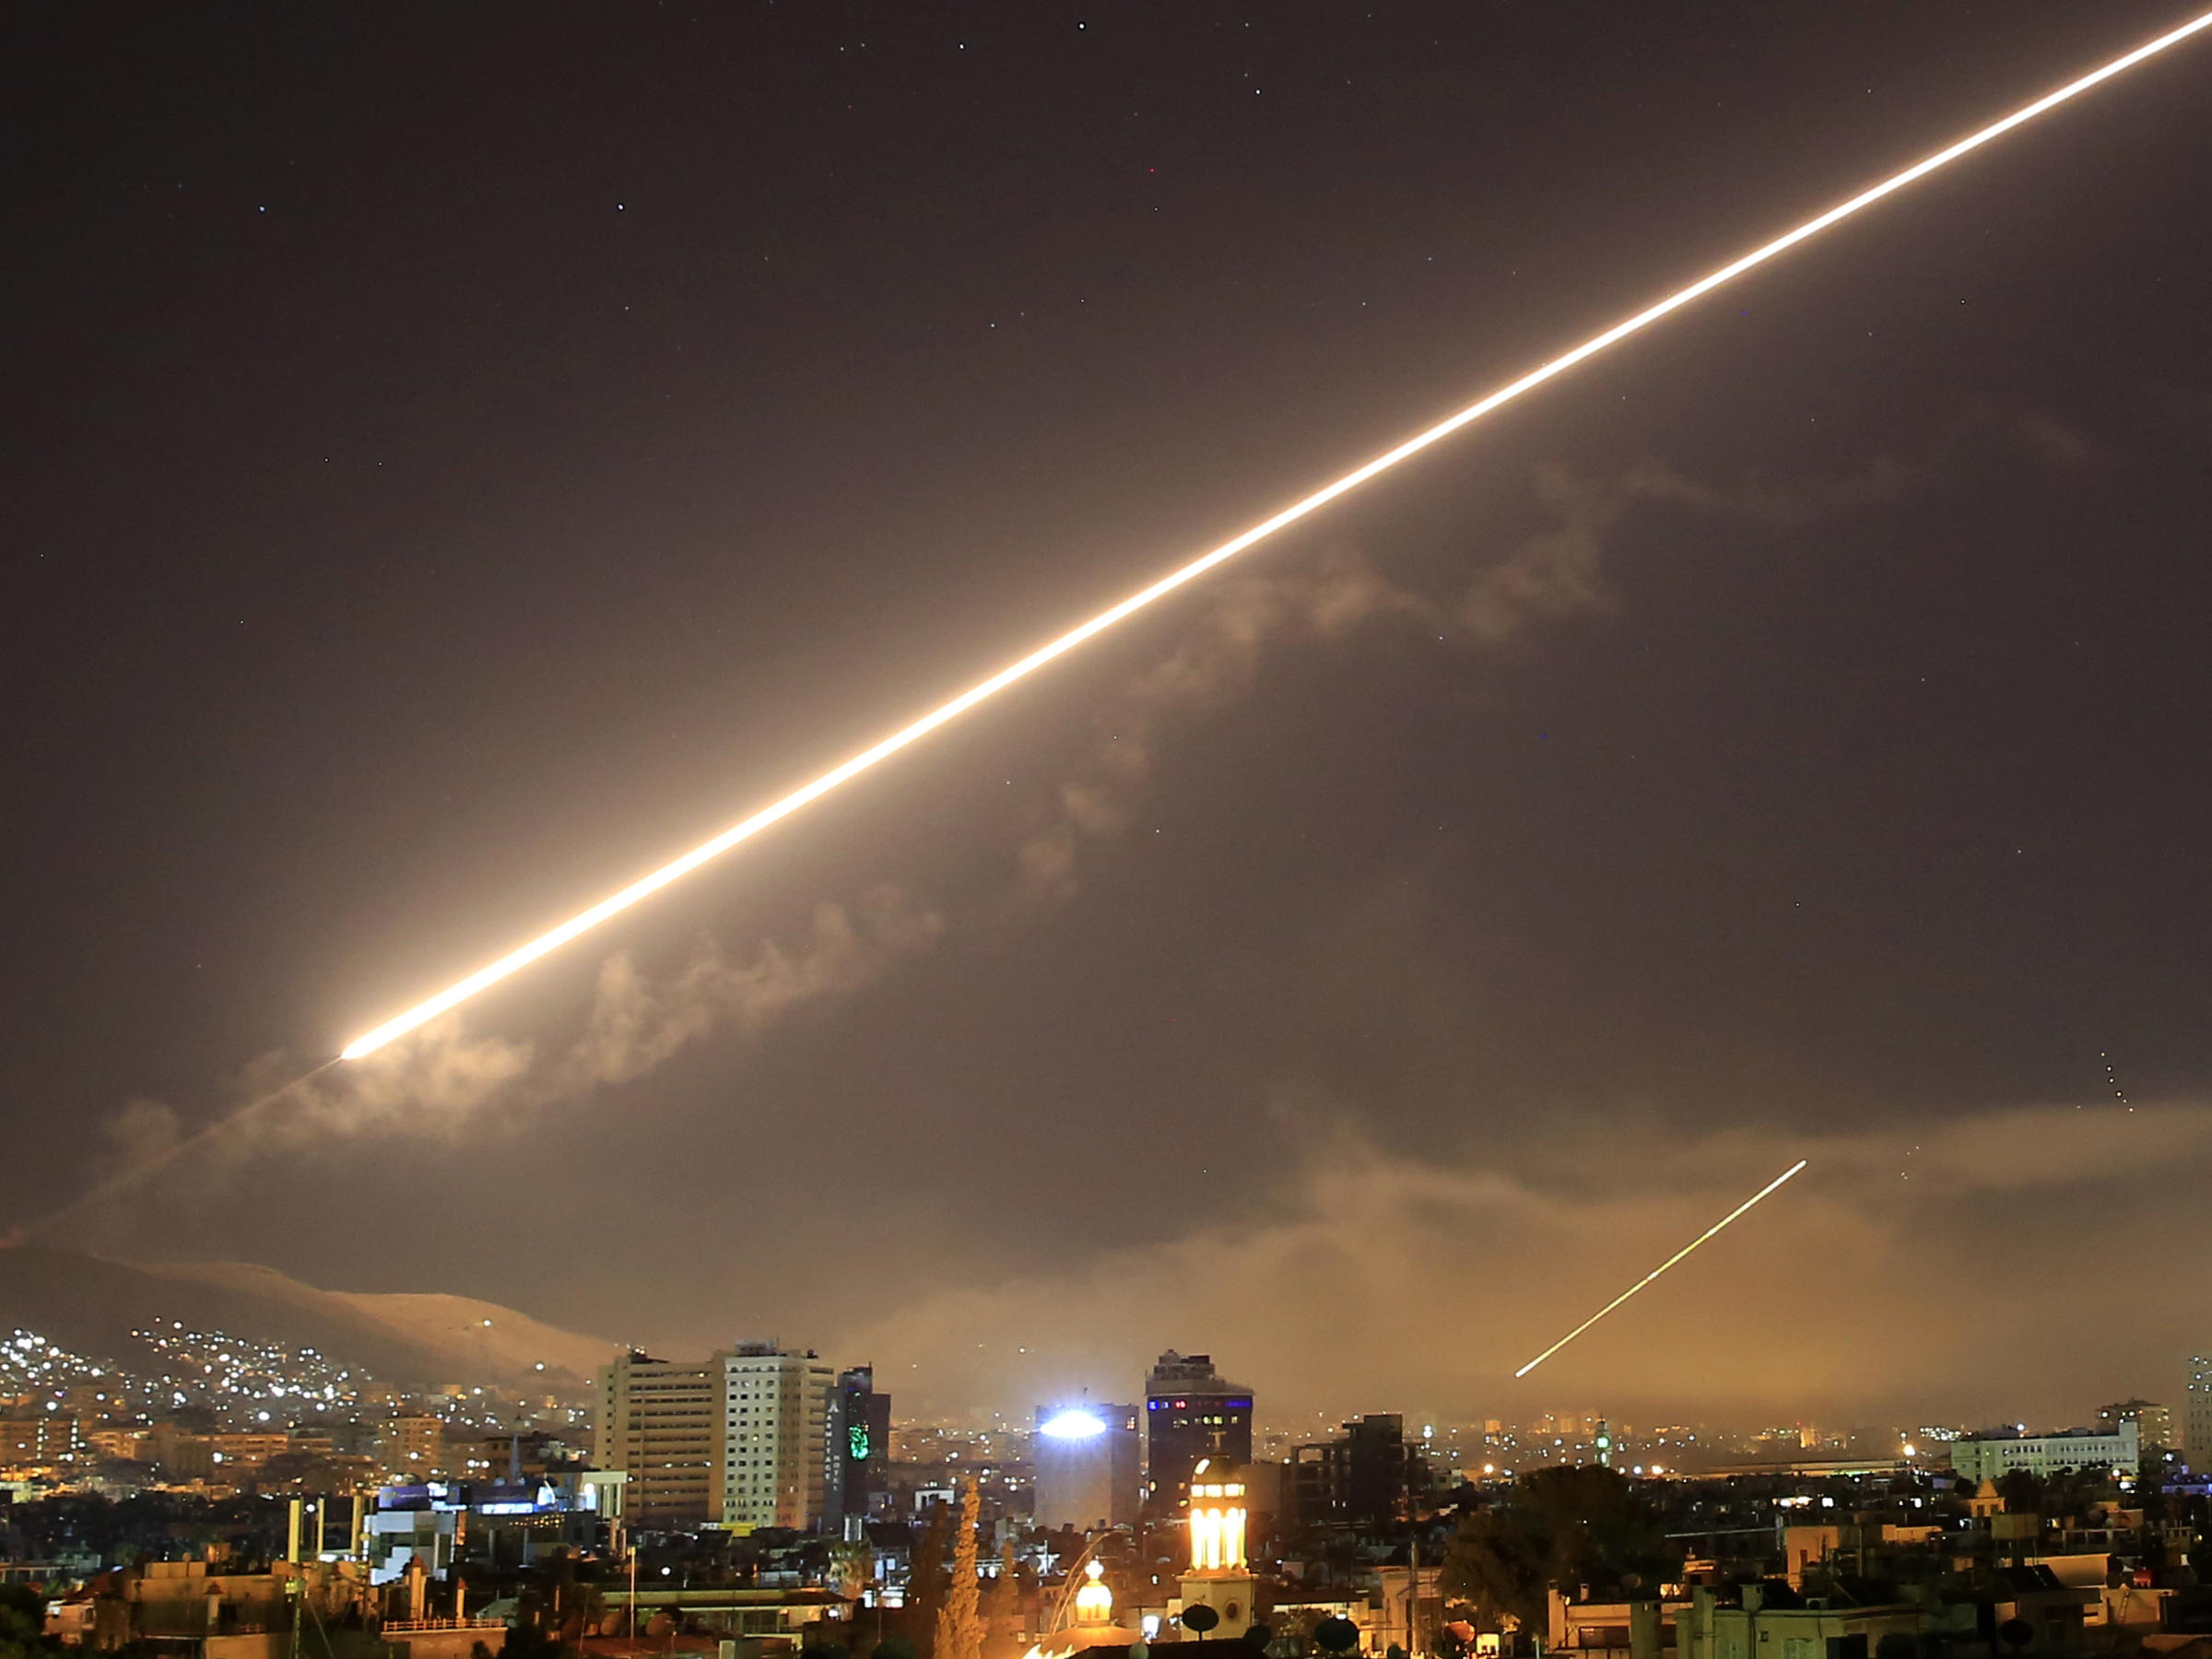 Syria's Assad in a 'good mood,' scorns United States  weaponry after airstrikes